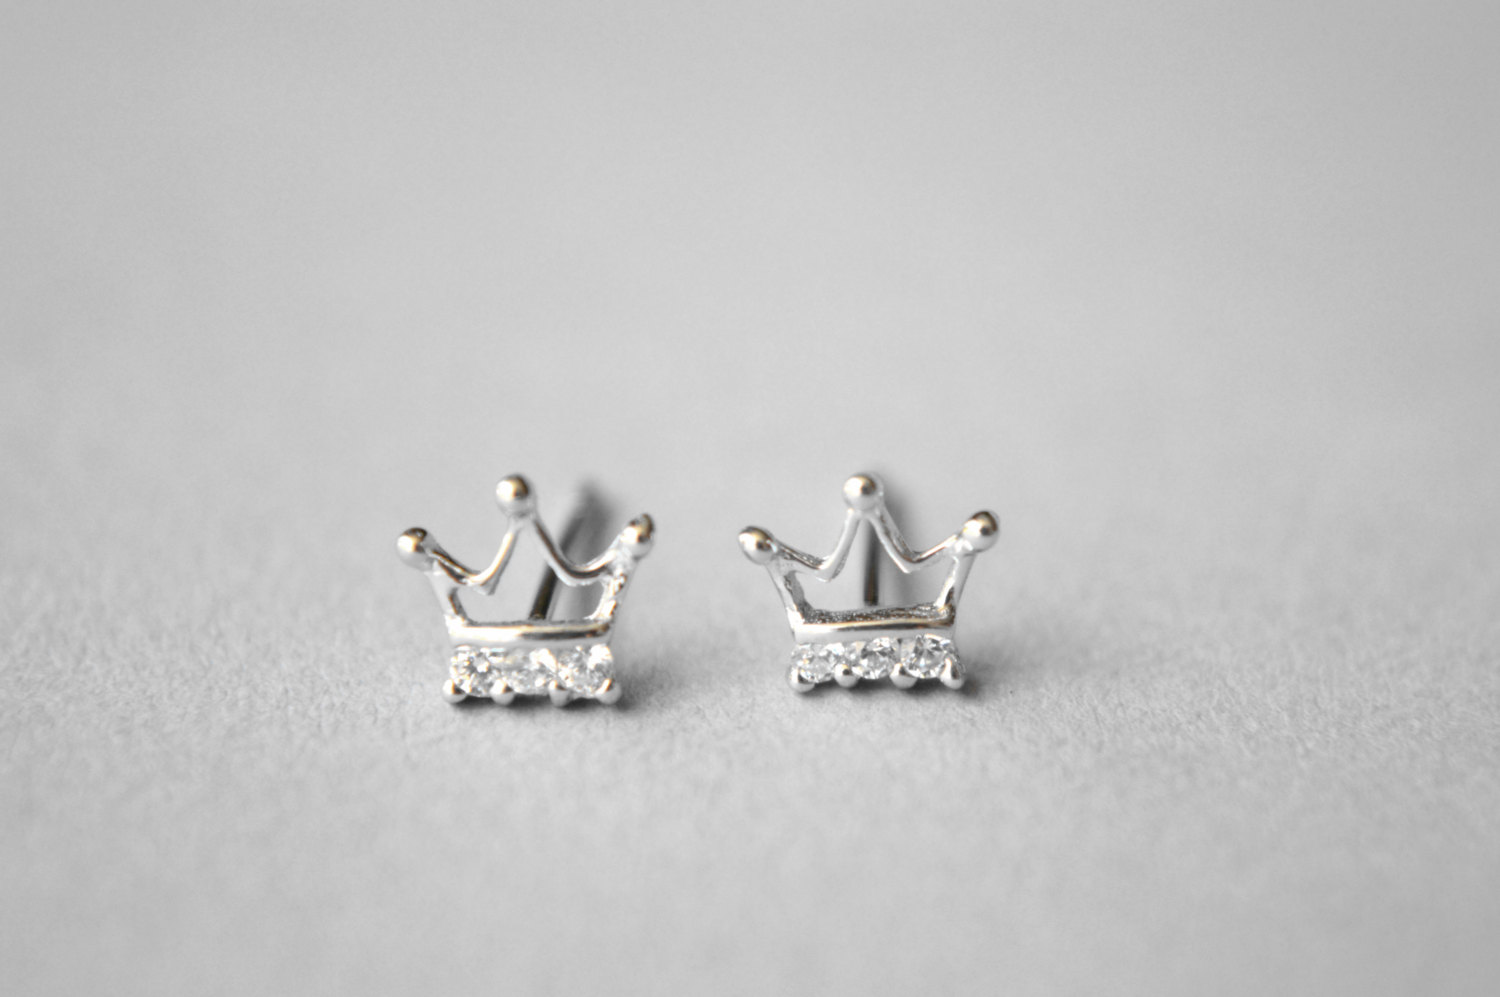 cz pandora silver jar earrings crown mv royal zm sterling stud